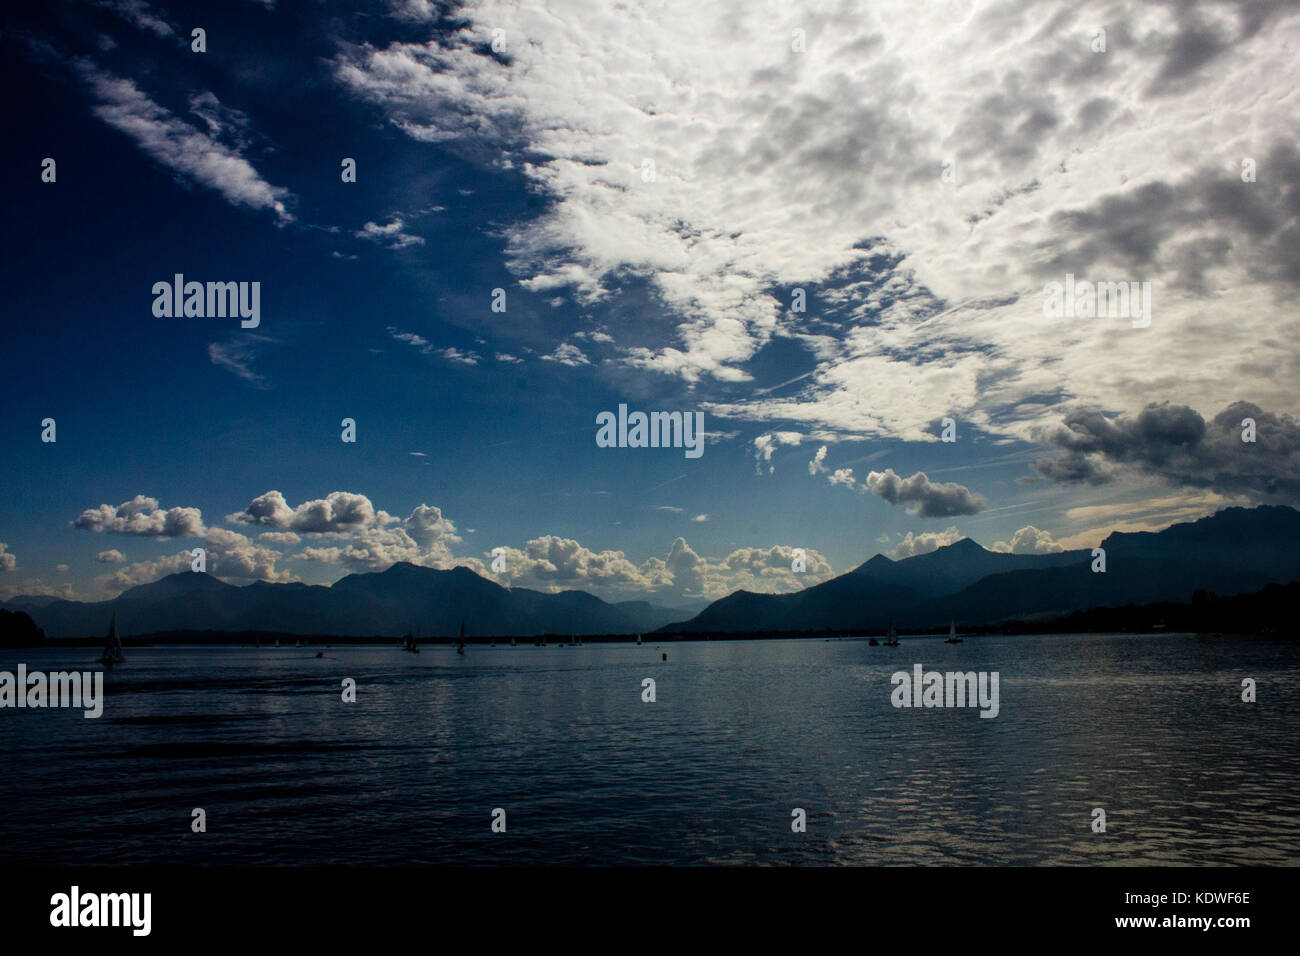 Chiemsee Lake, in Bavaria, Germany - Stock Image